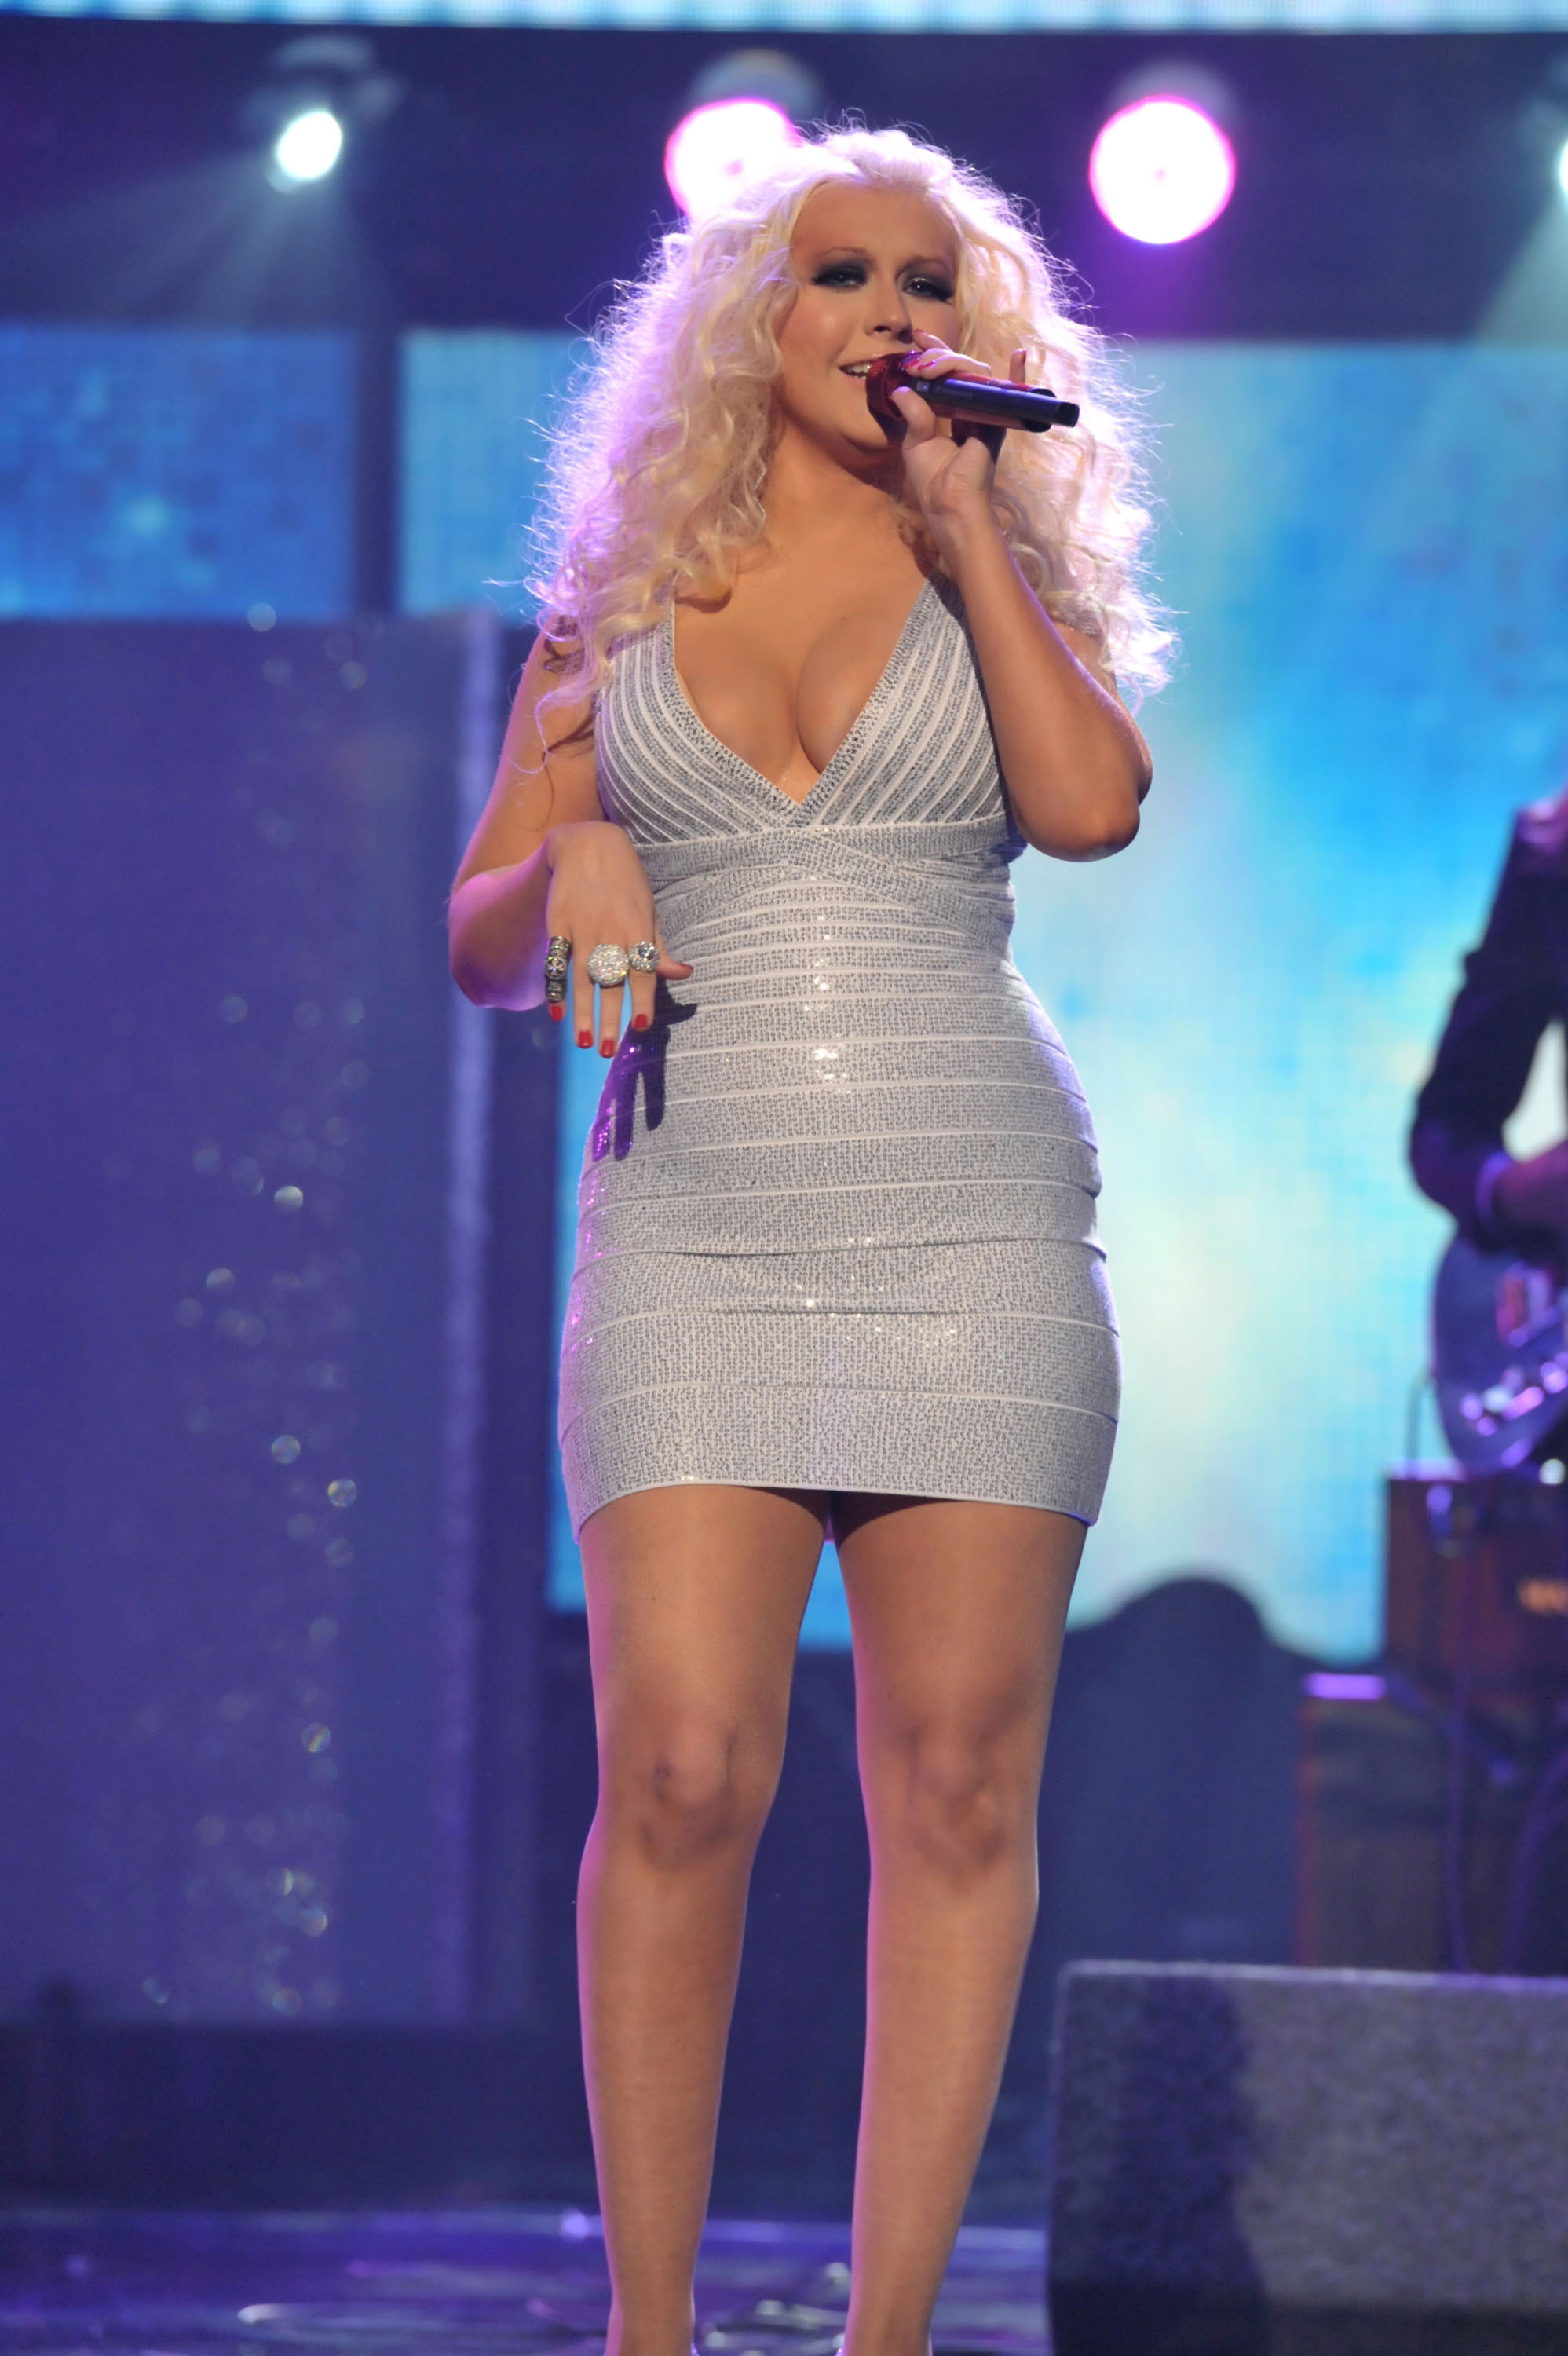 Christina Aguilera sang with Maroon 5.